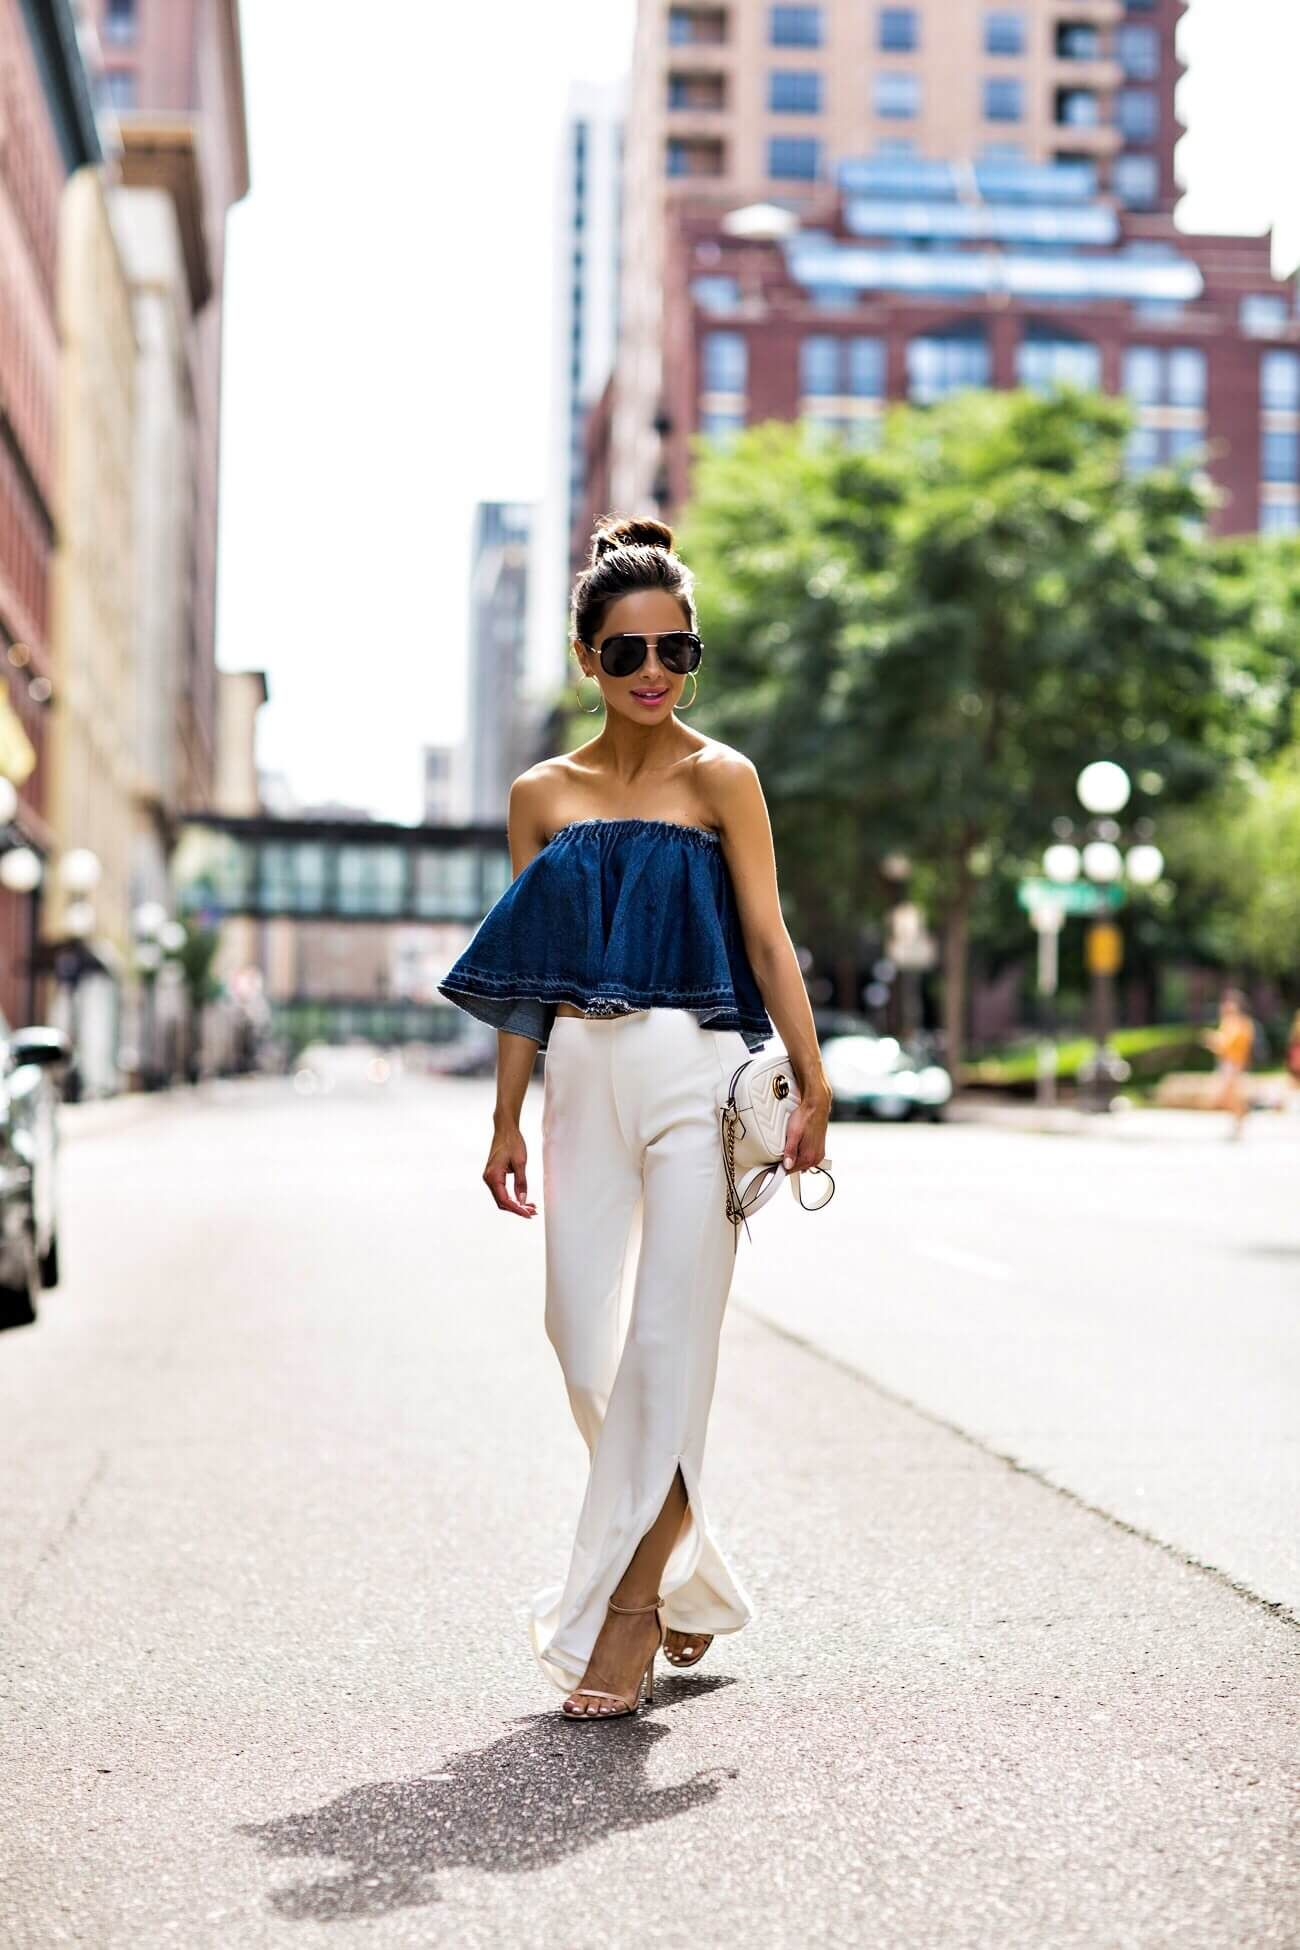 fb91a20662c fashion blogger mia mia mine wearing a denim strapless top and white pants  from revolve